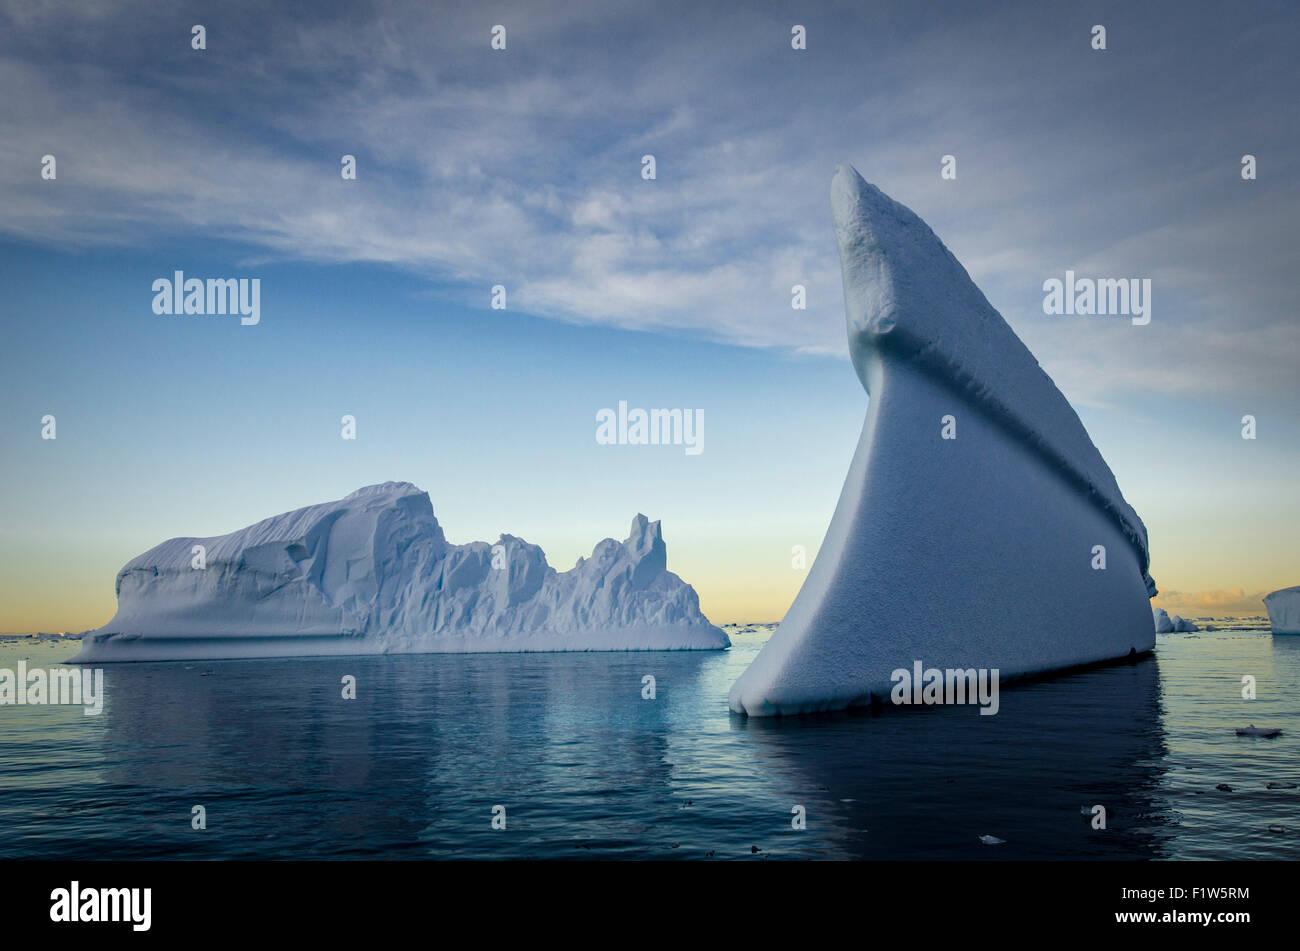 A large iceberg in Antarctica - Stock Image